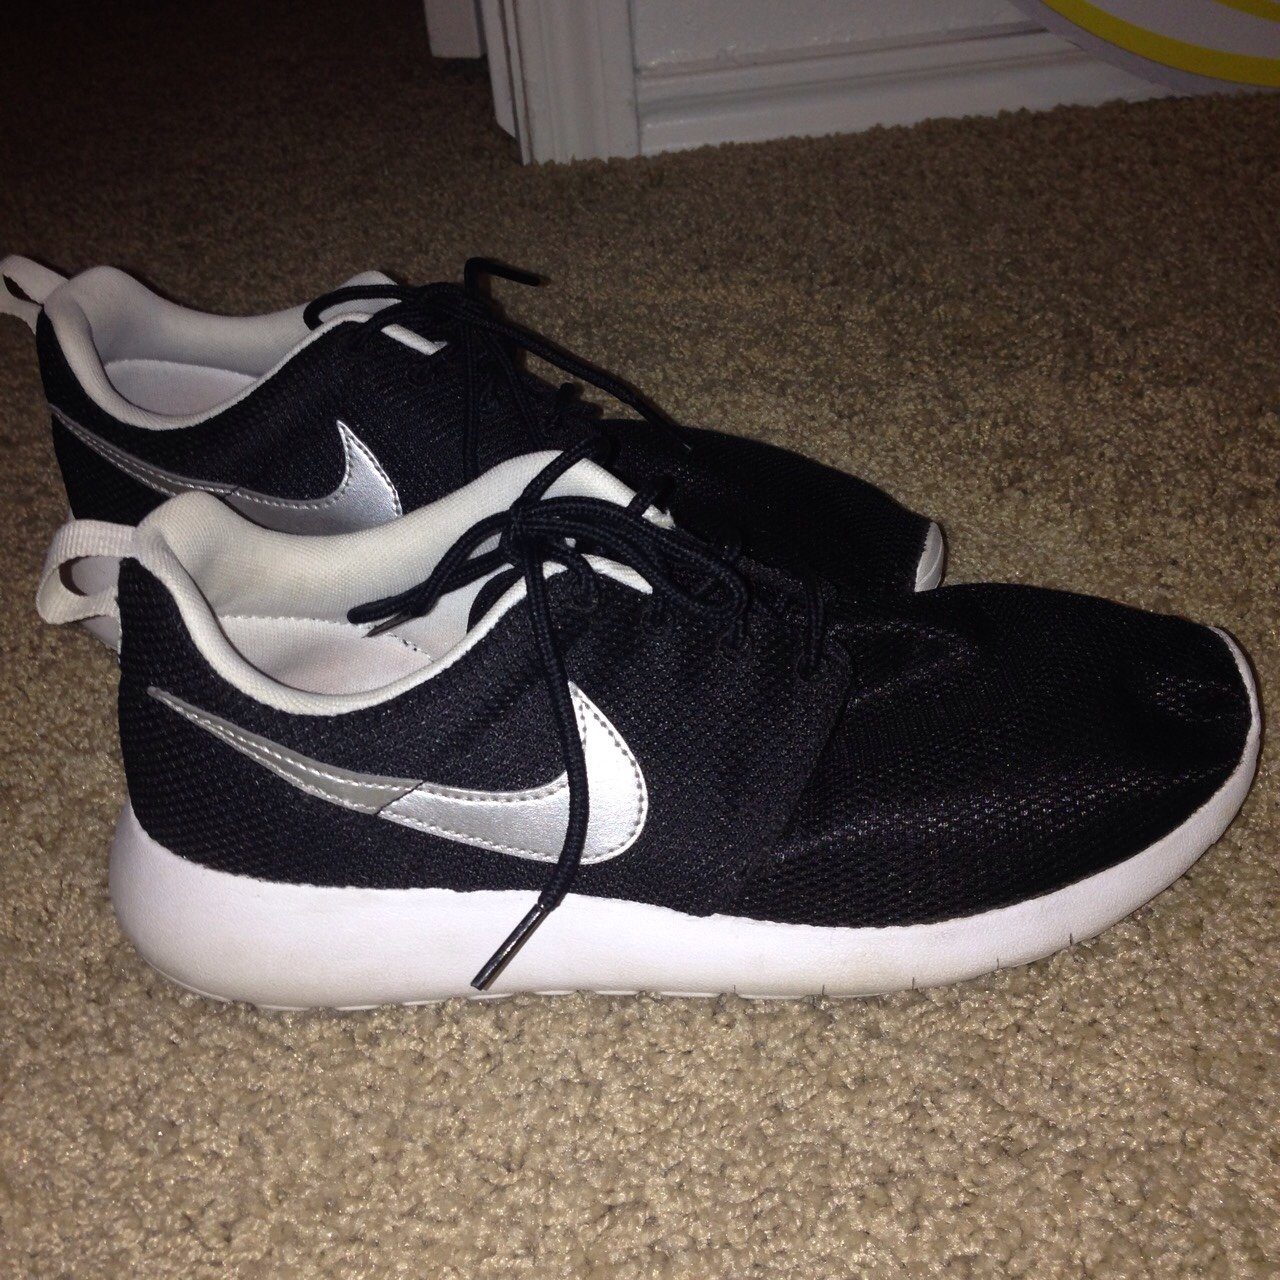 a6779a5b5de320 Nike Roshes women s size 9. A little dirt on the bottom but - Depop